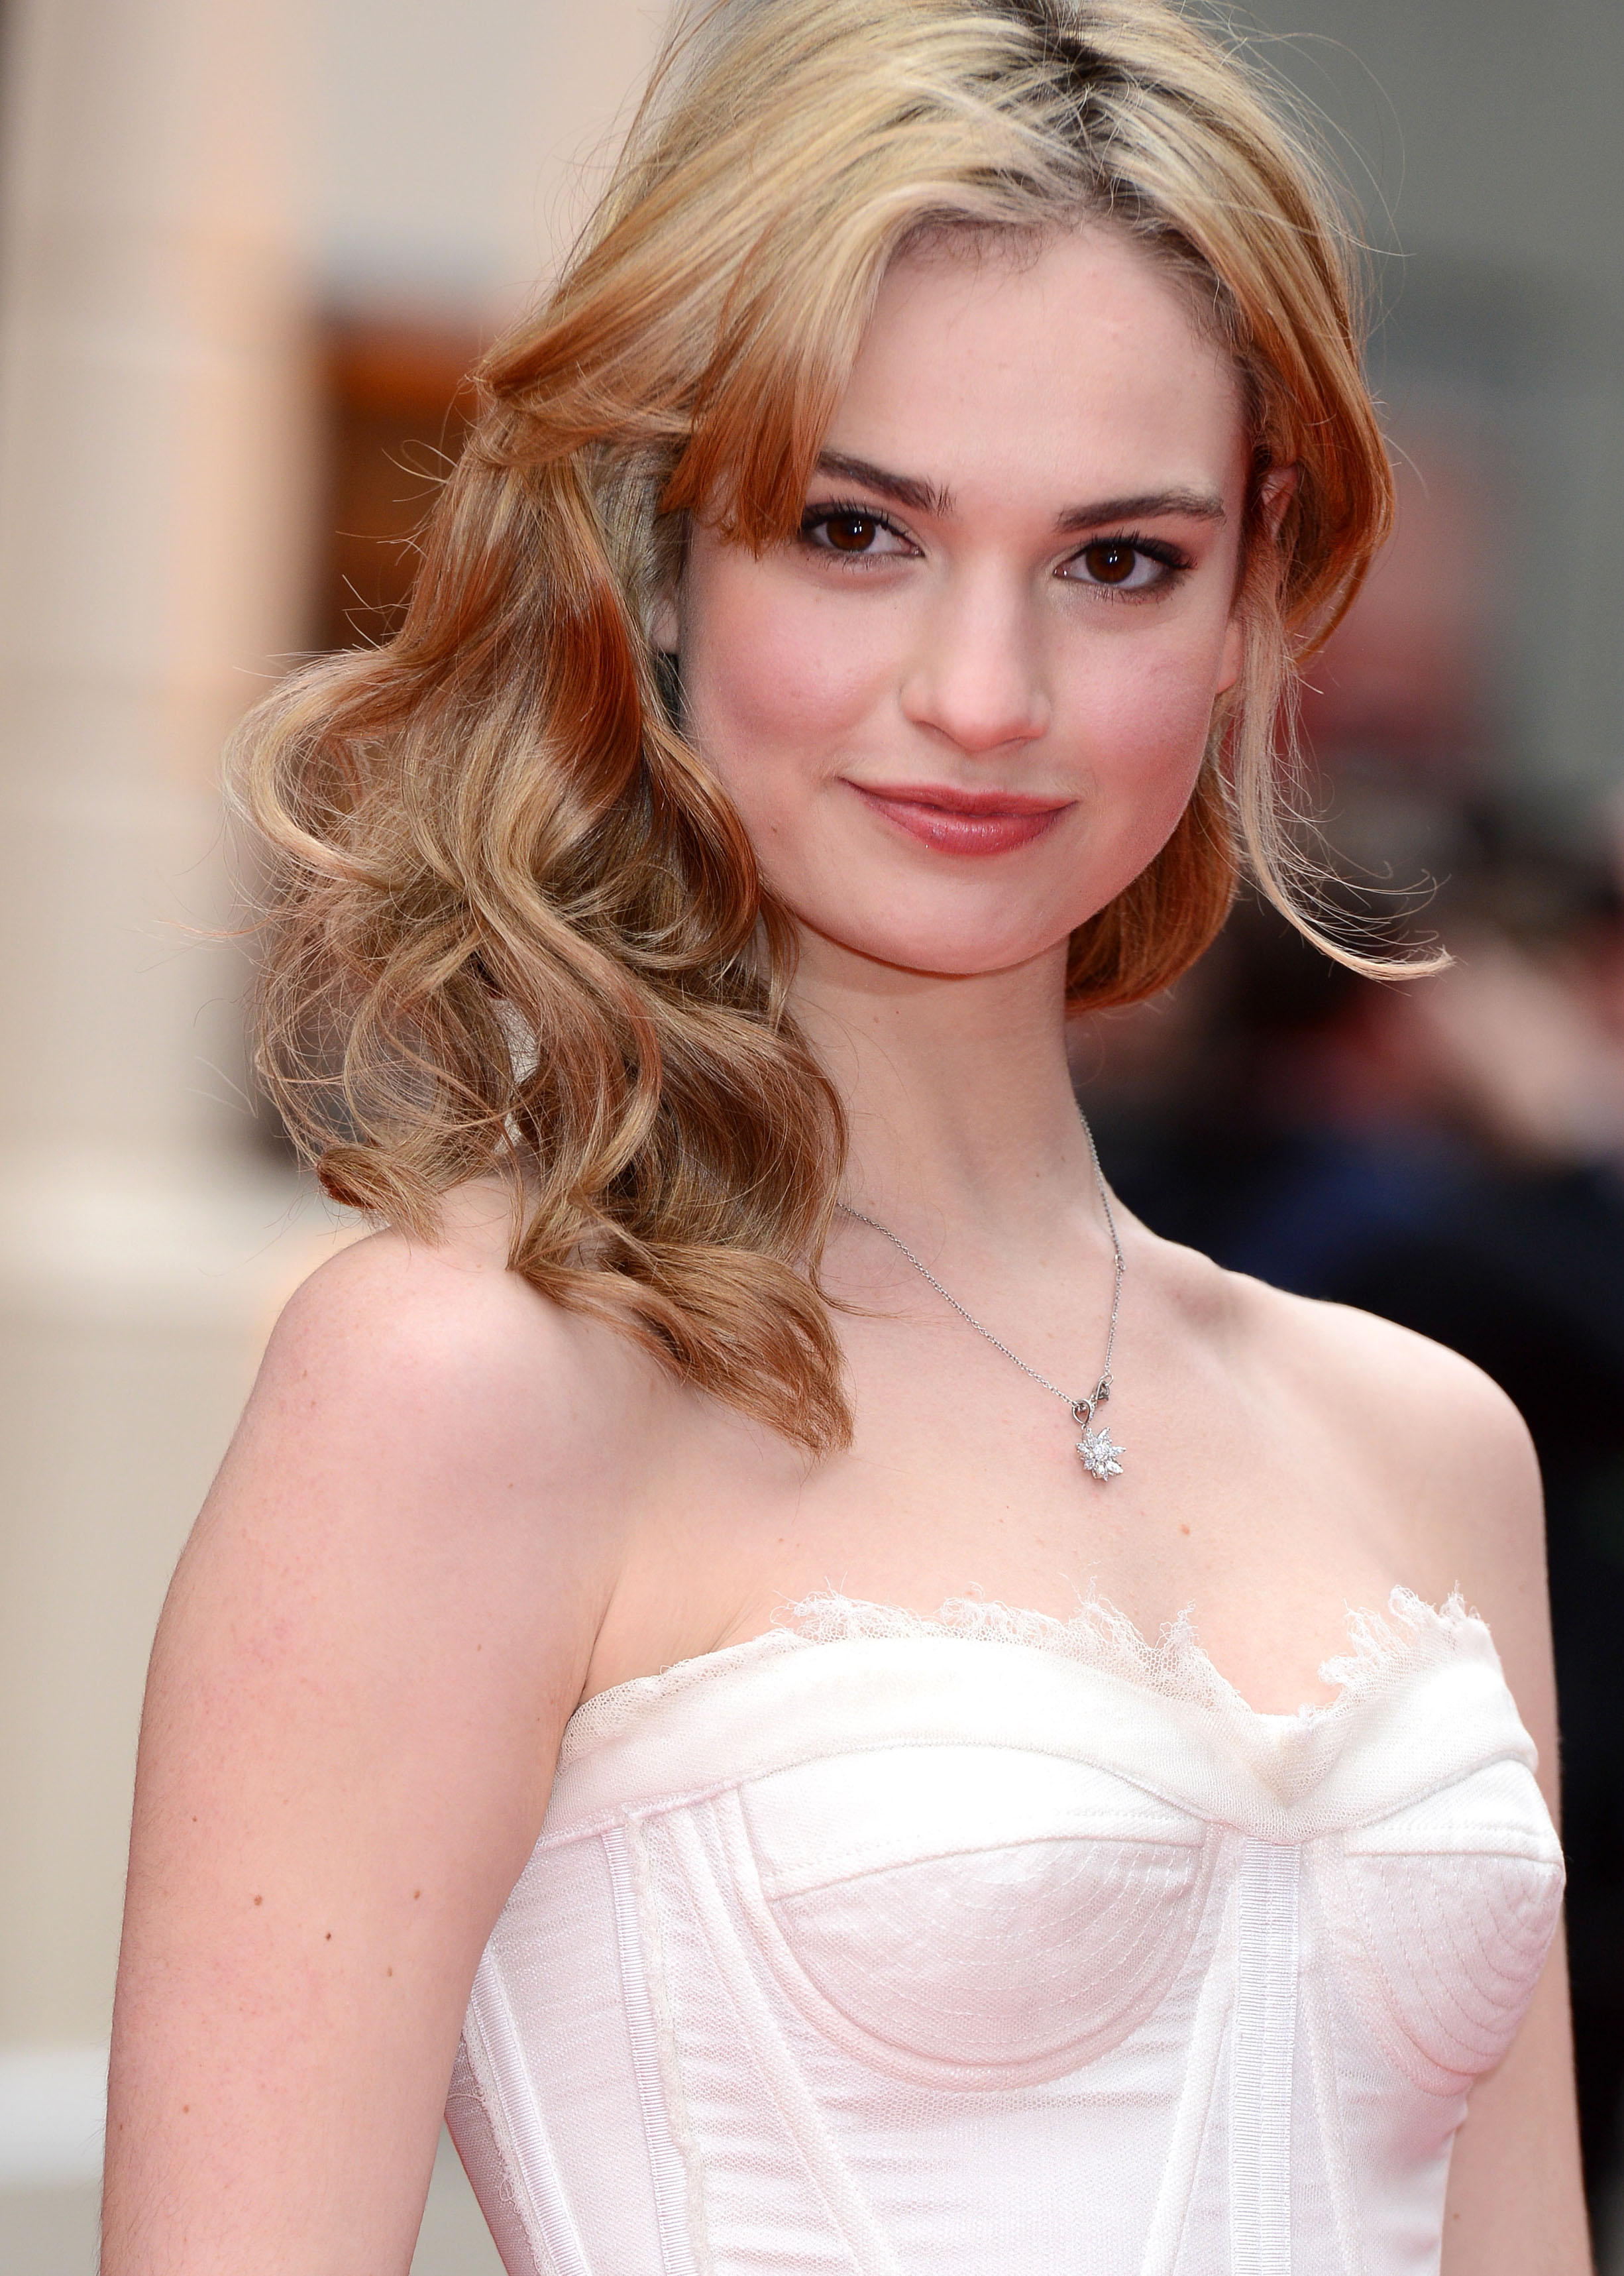 Ring Tv Actress Lily James Nude Leaked Pics - Fappening Sauce-5509